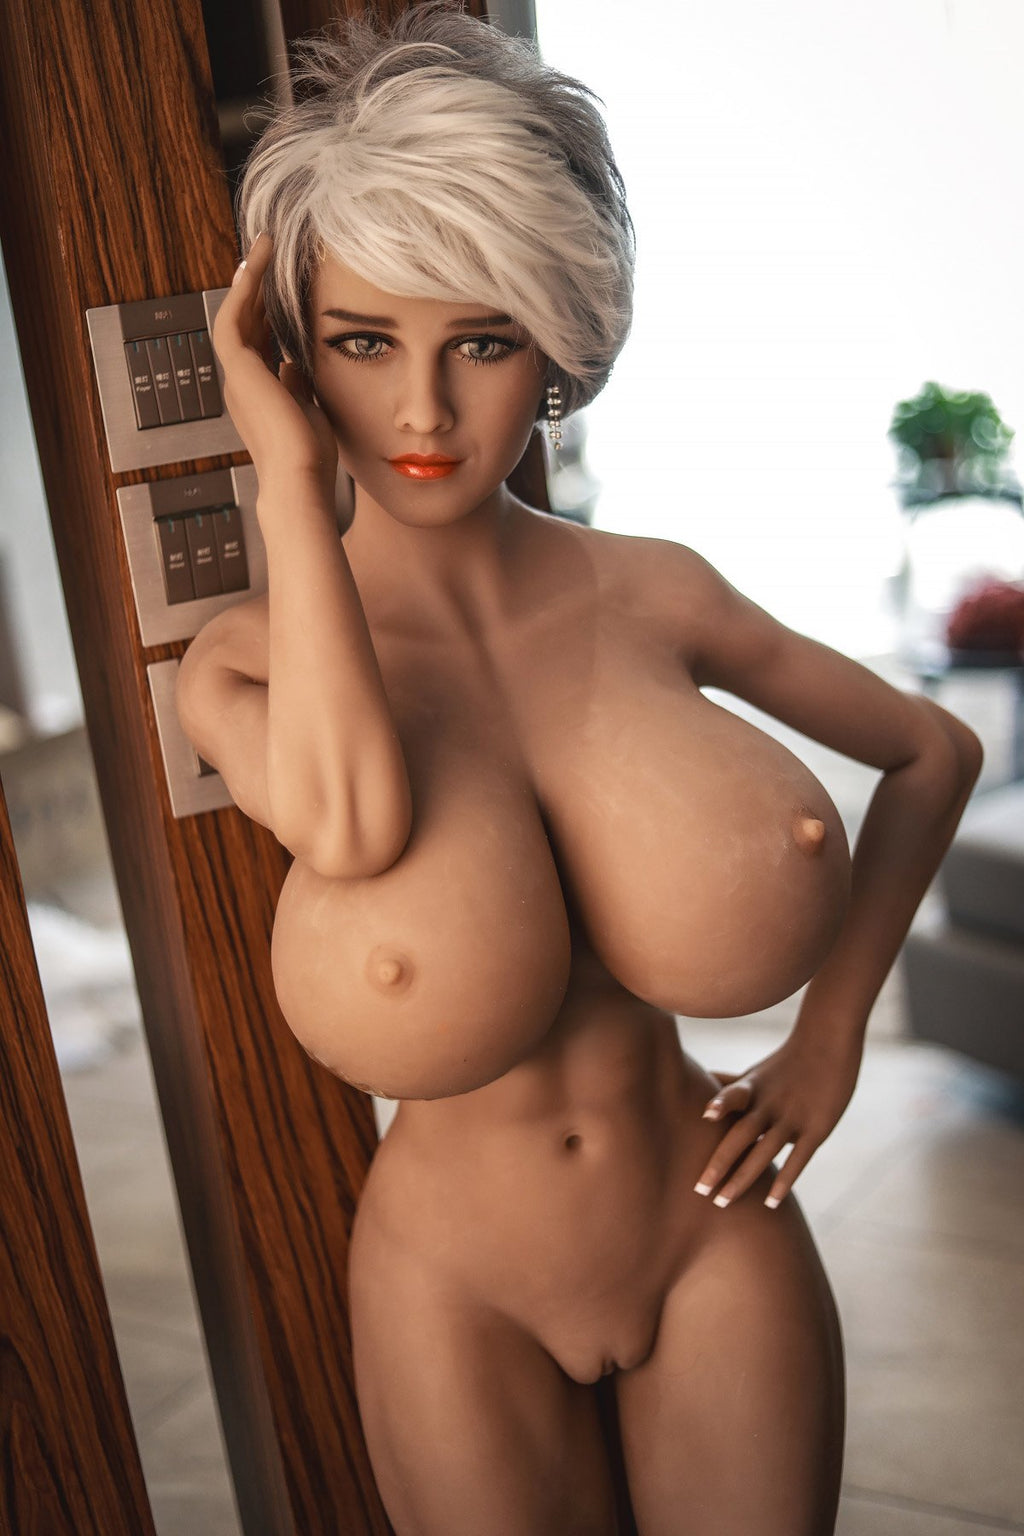 marin 150cm blonde curvy giant massive tits jy tan skin tpe sex doll